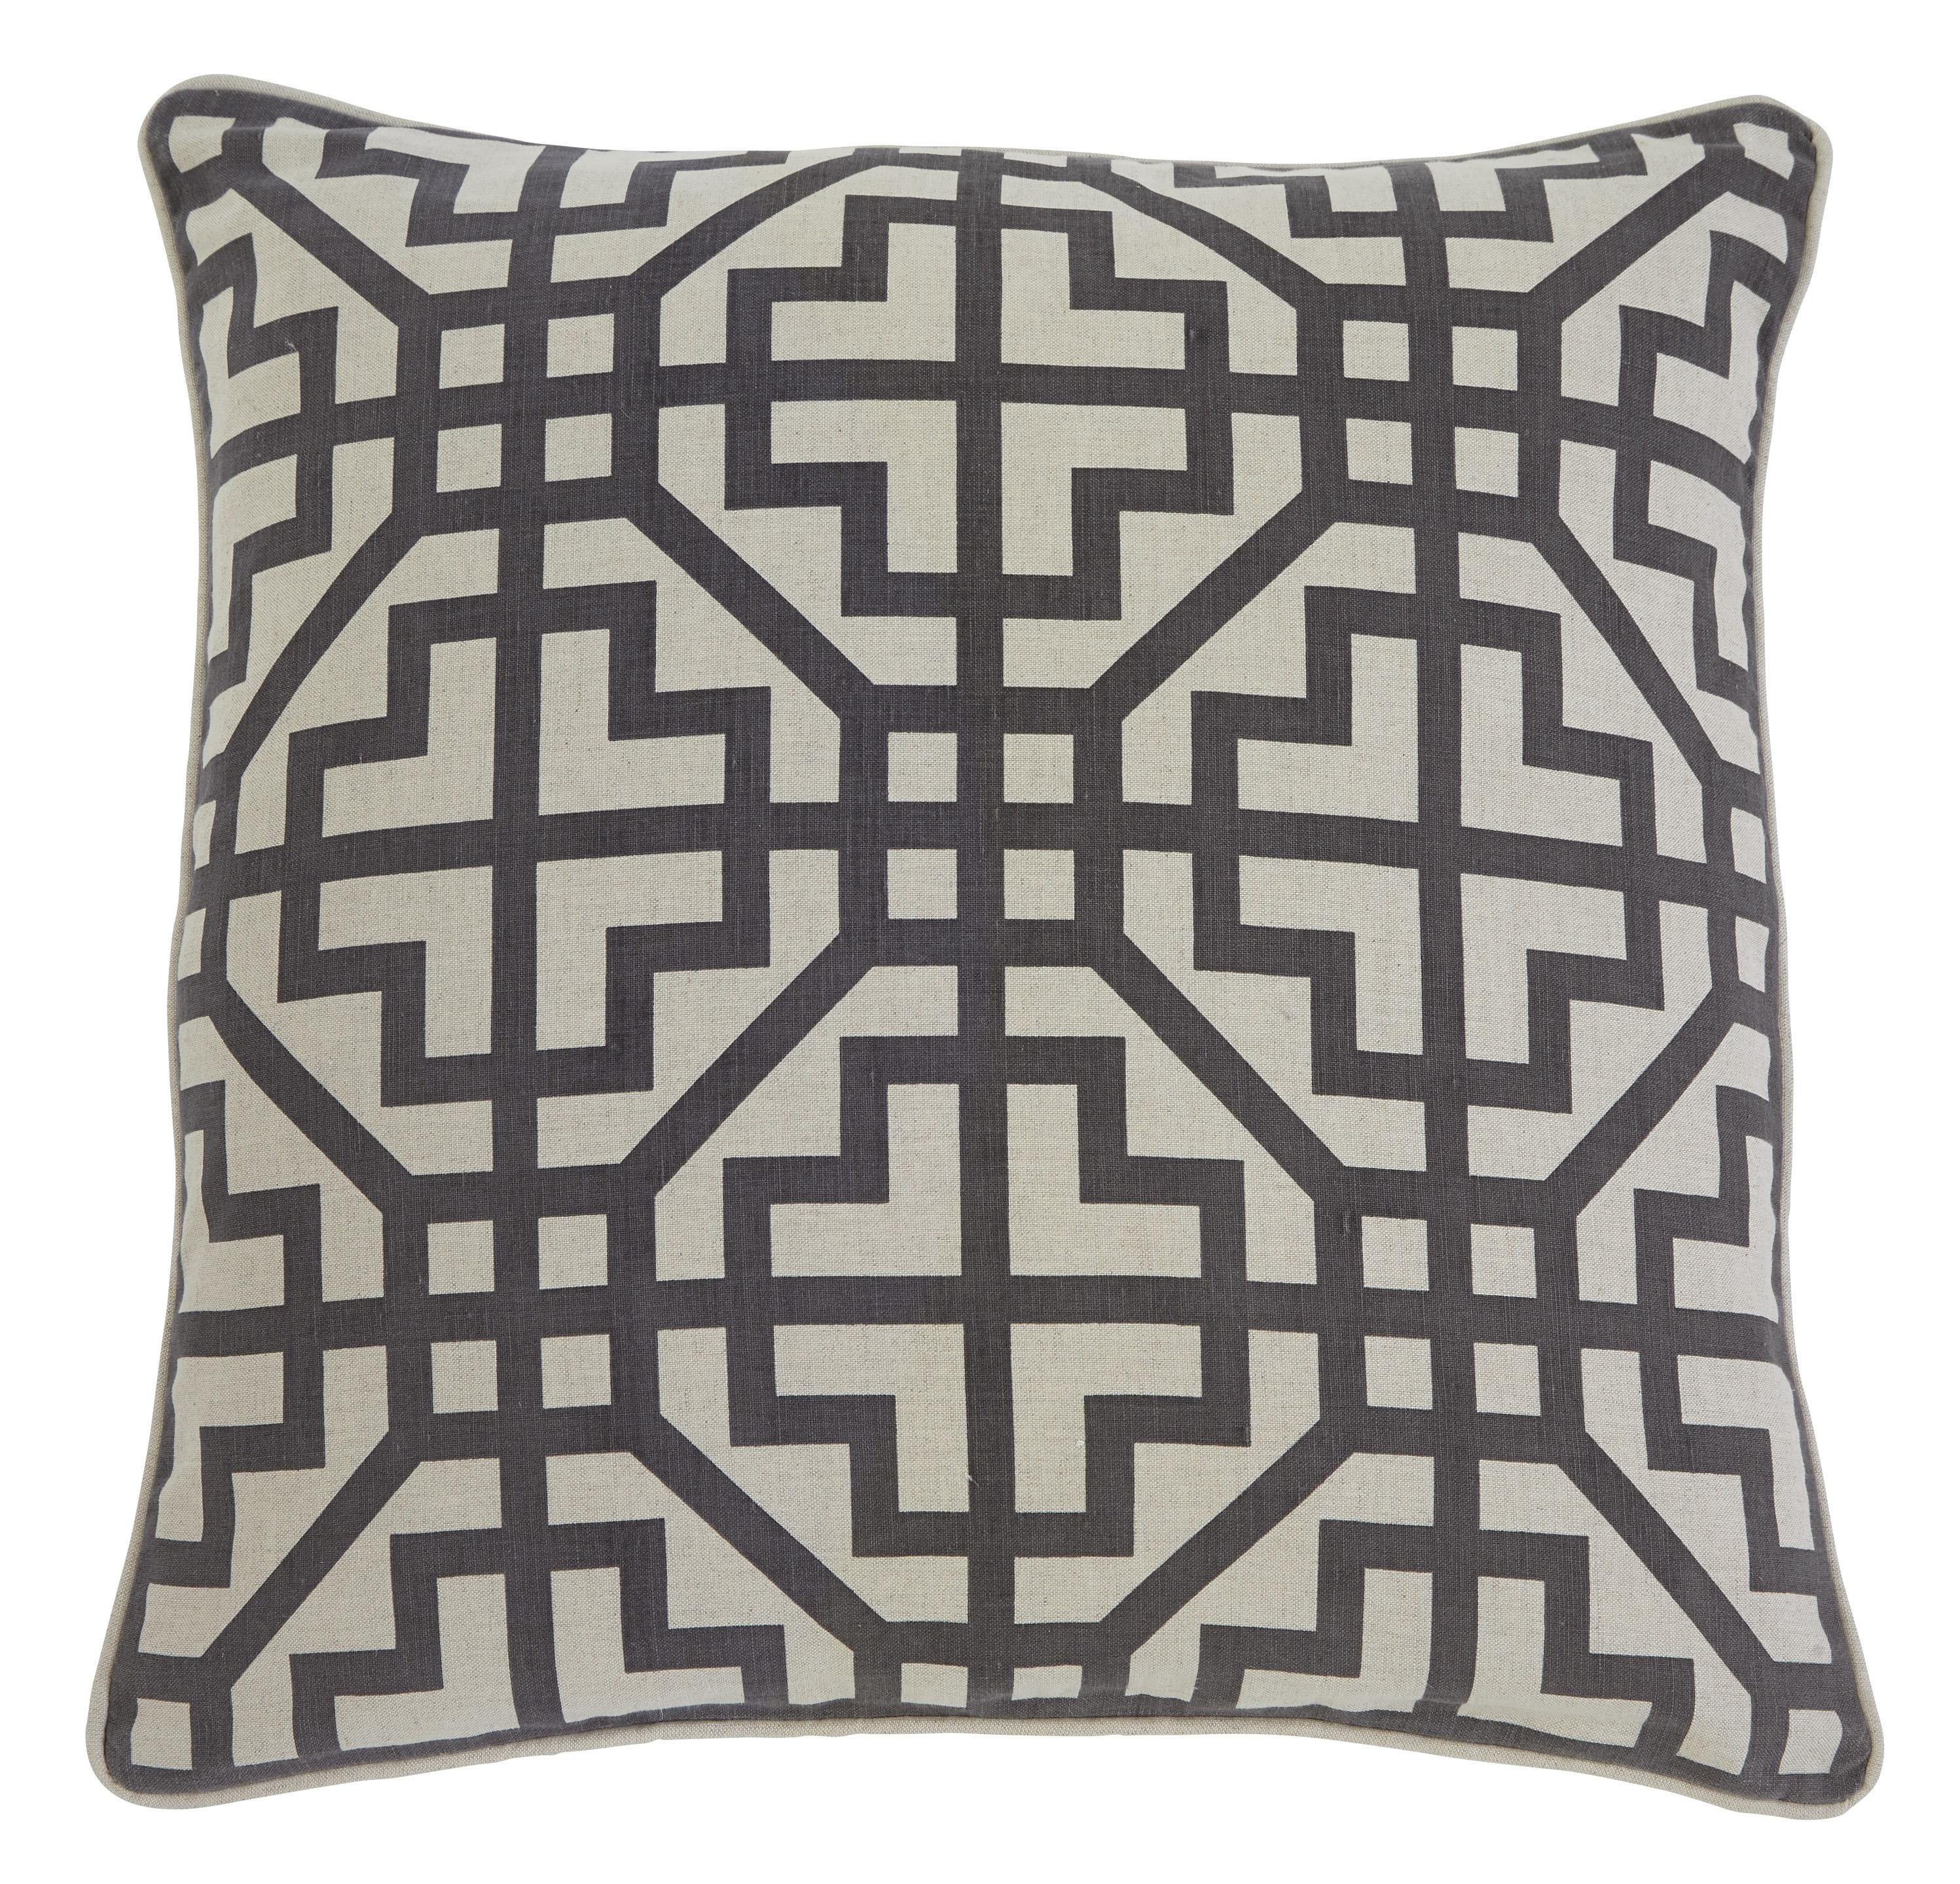 Signature Design by Ashley Pillows Geometric - Charcoal Pillow Cover - Item Number: A1000347P